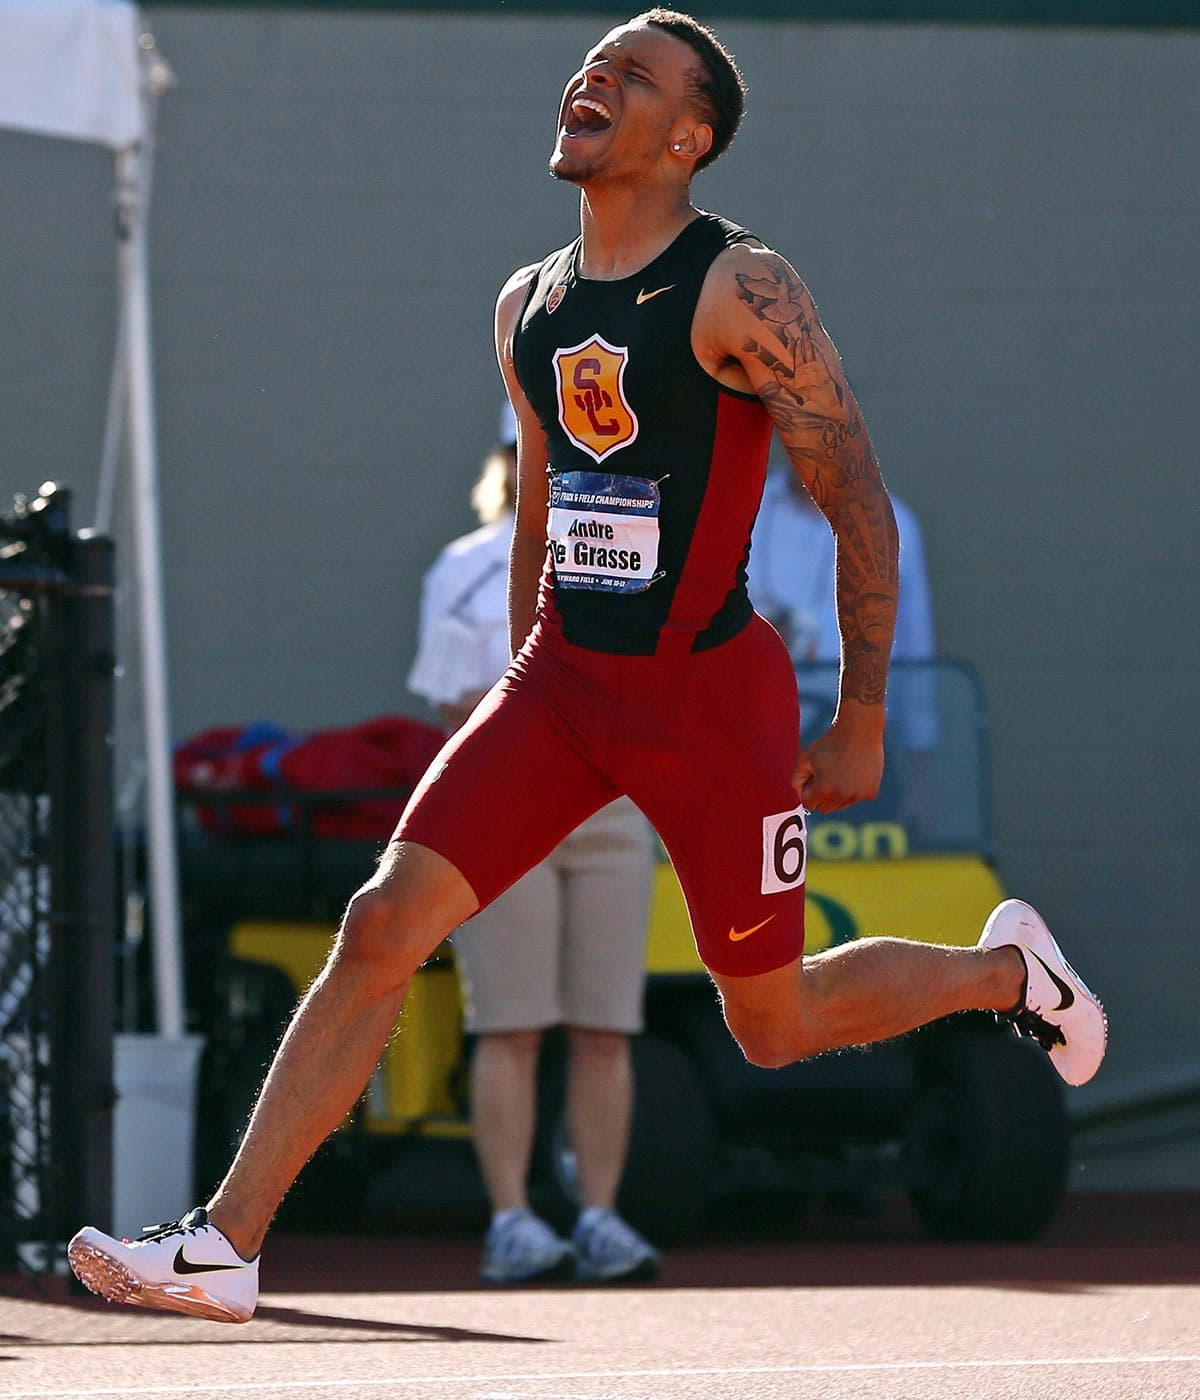 Andre De Grasse: What did I just do?